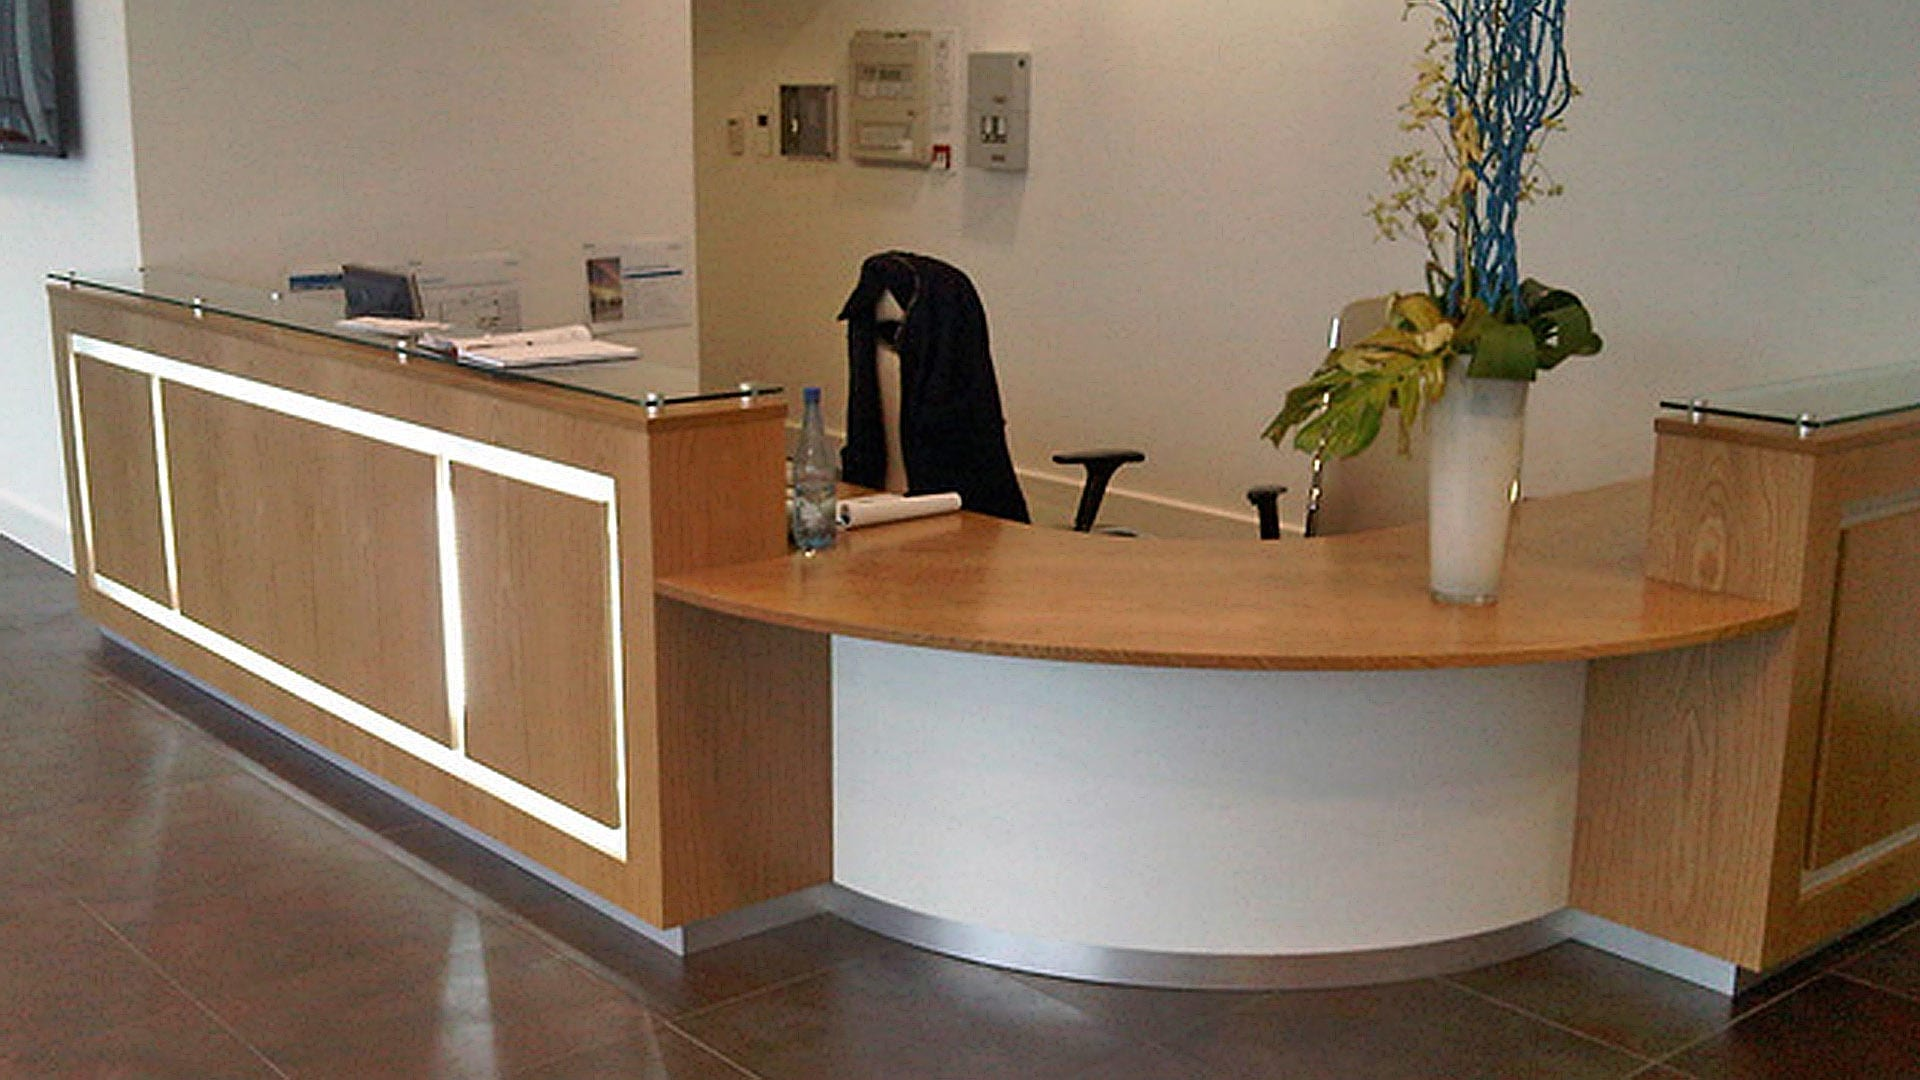 cobham_plc_interiordesign_spaceuk4